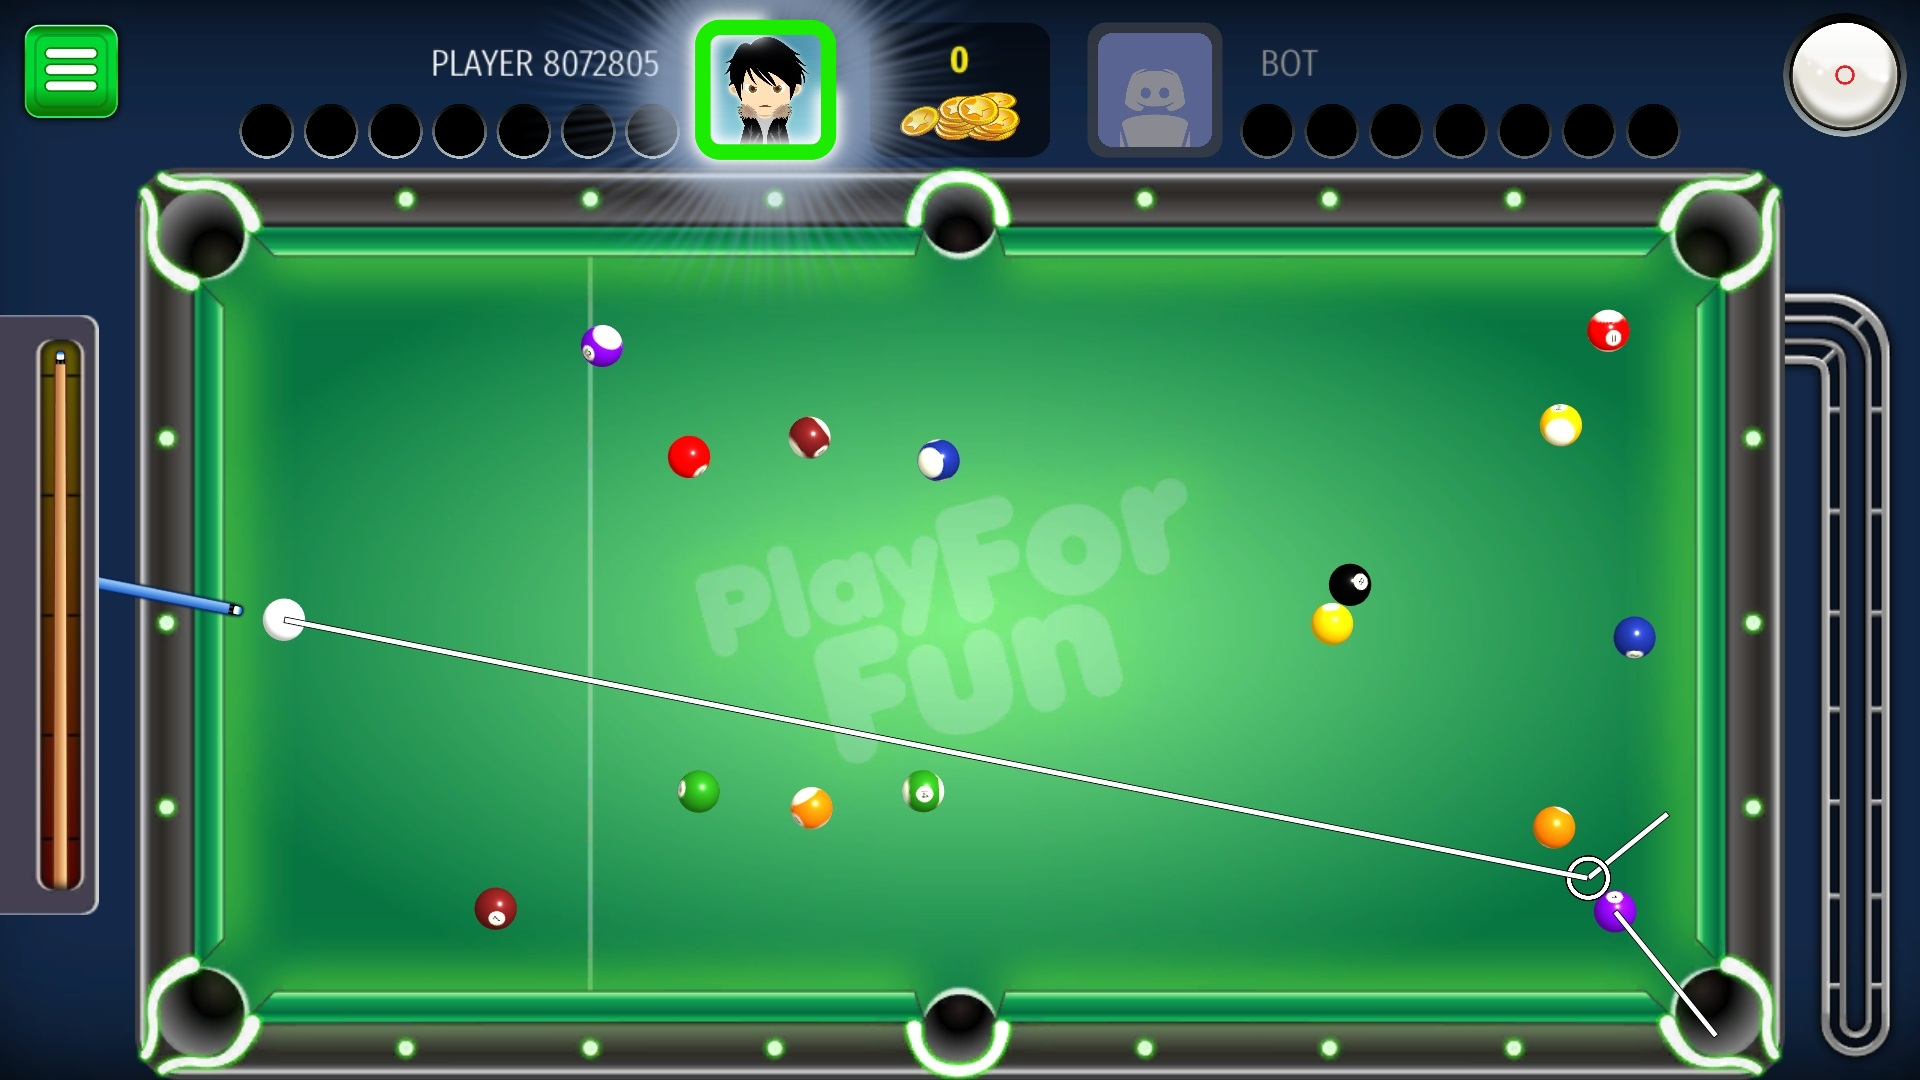 8 ball pool matchmaking